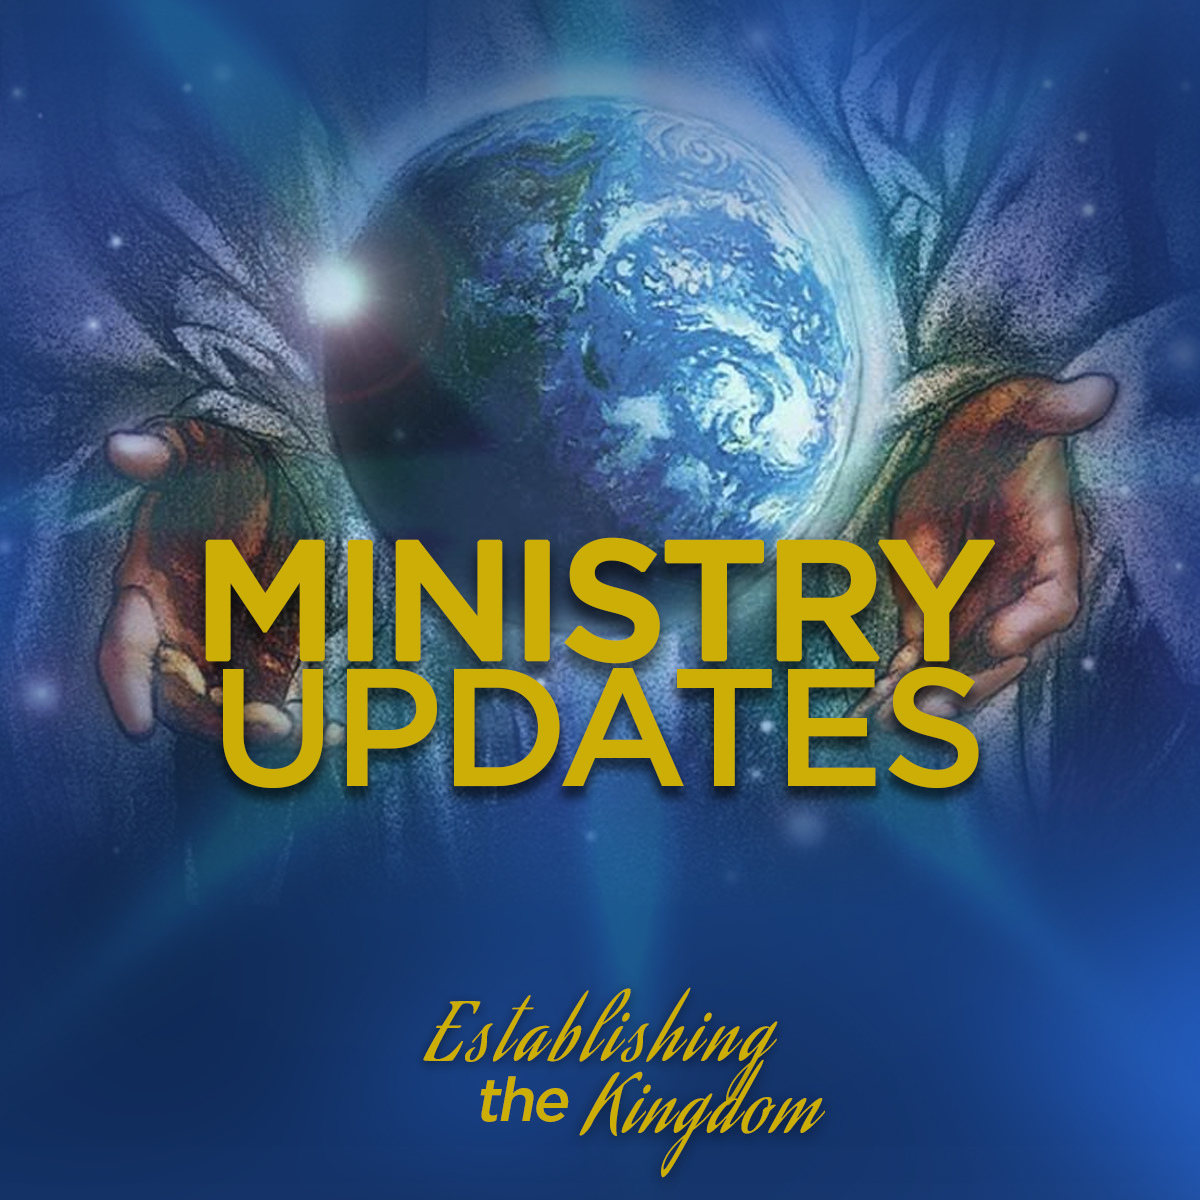 ministry update